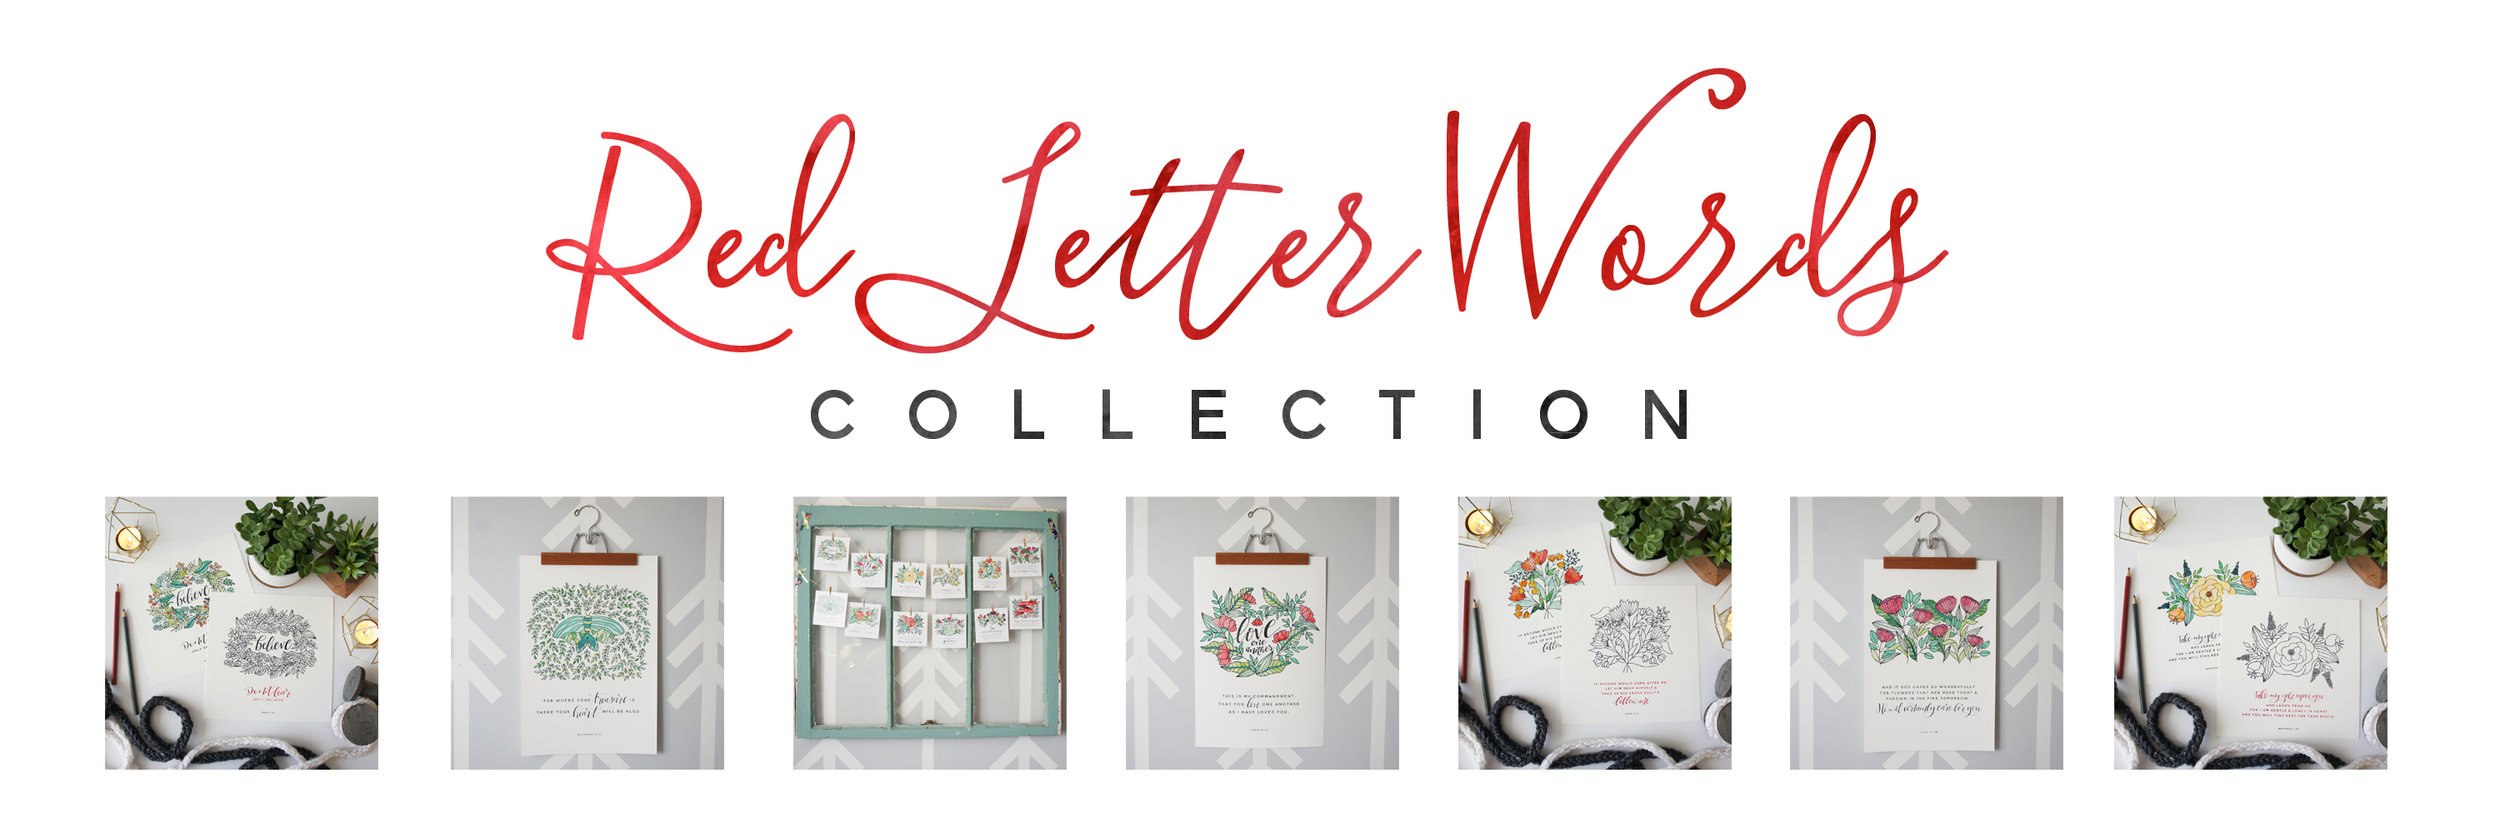 Red Letter Words Collection || Little House Studio